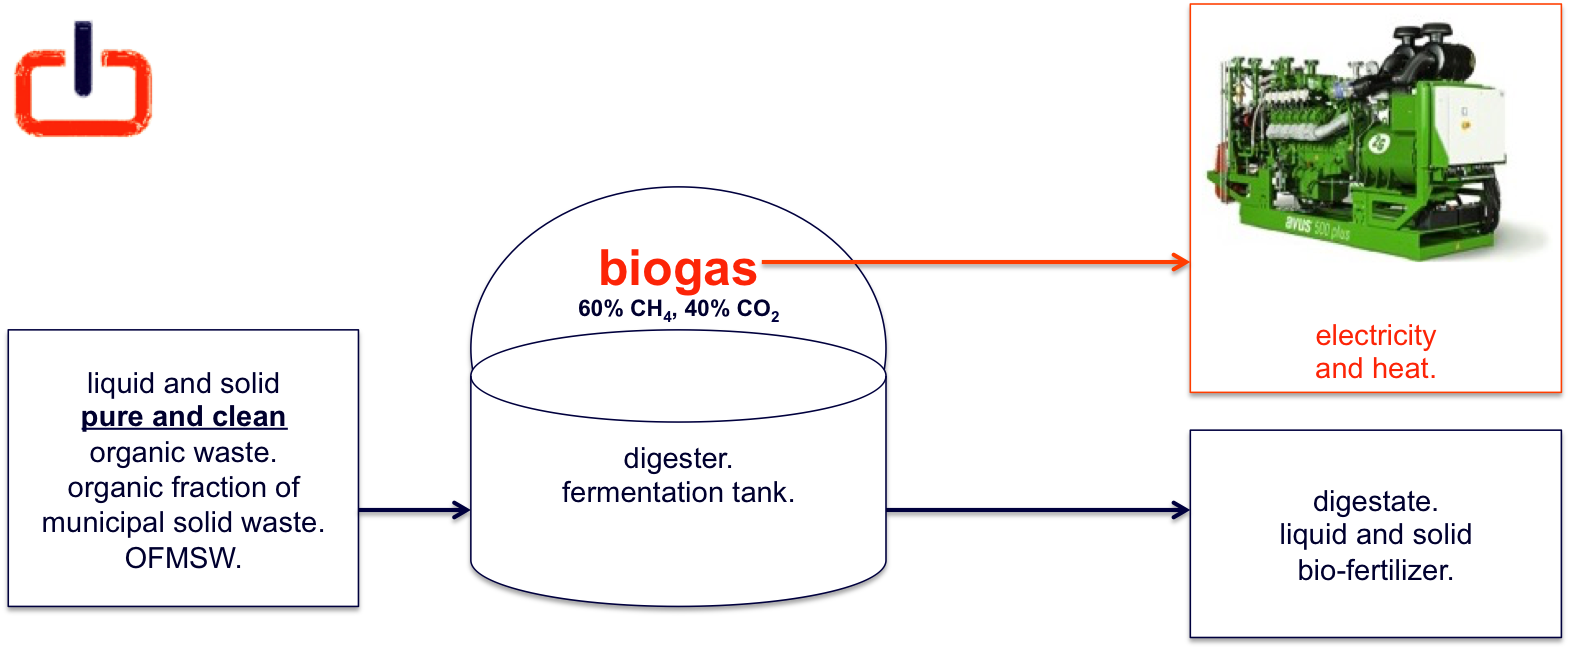 generizon schema, waste 2 biogas 2 energy & fertilizer.